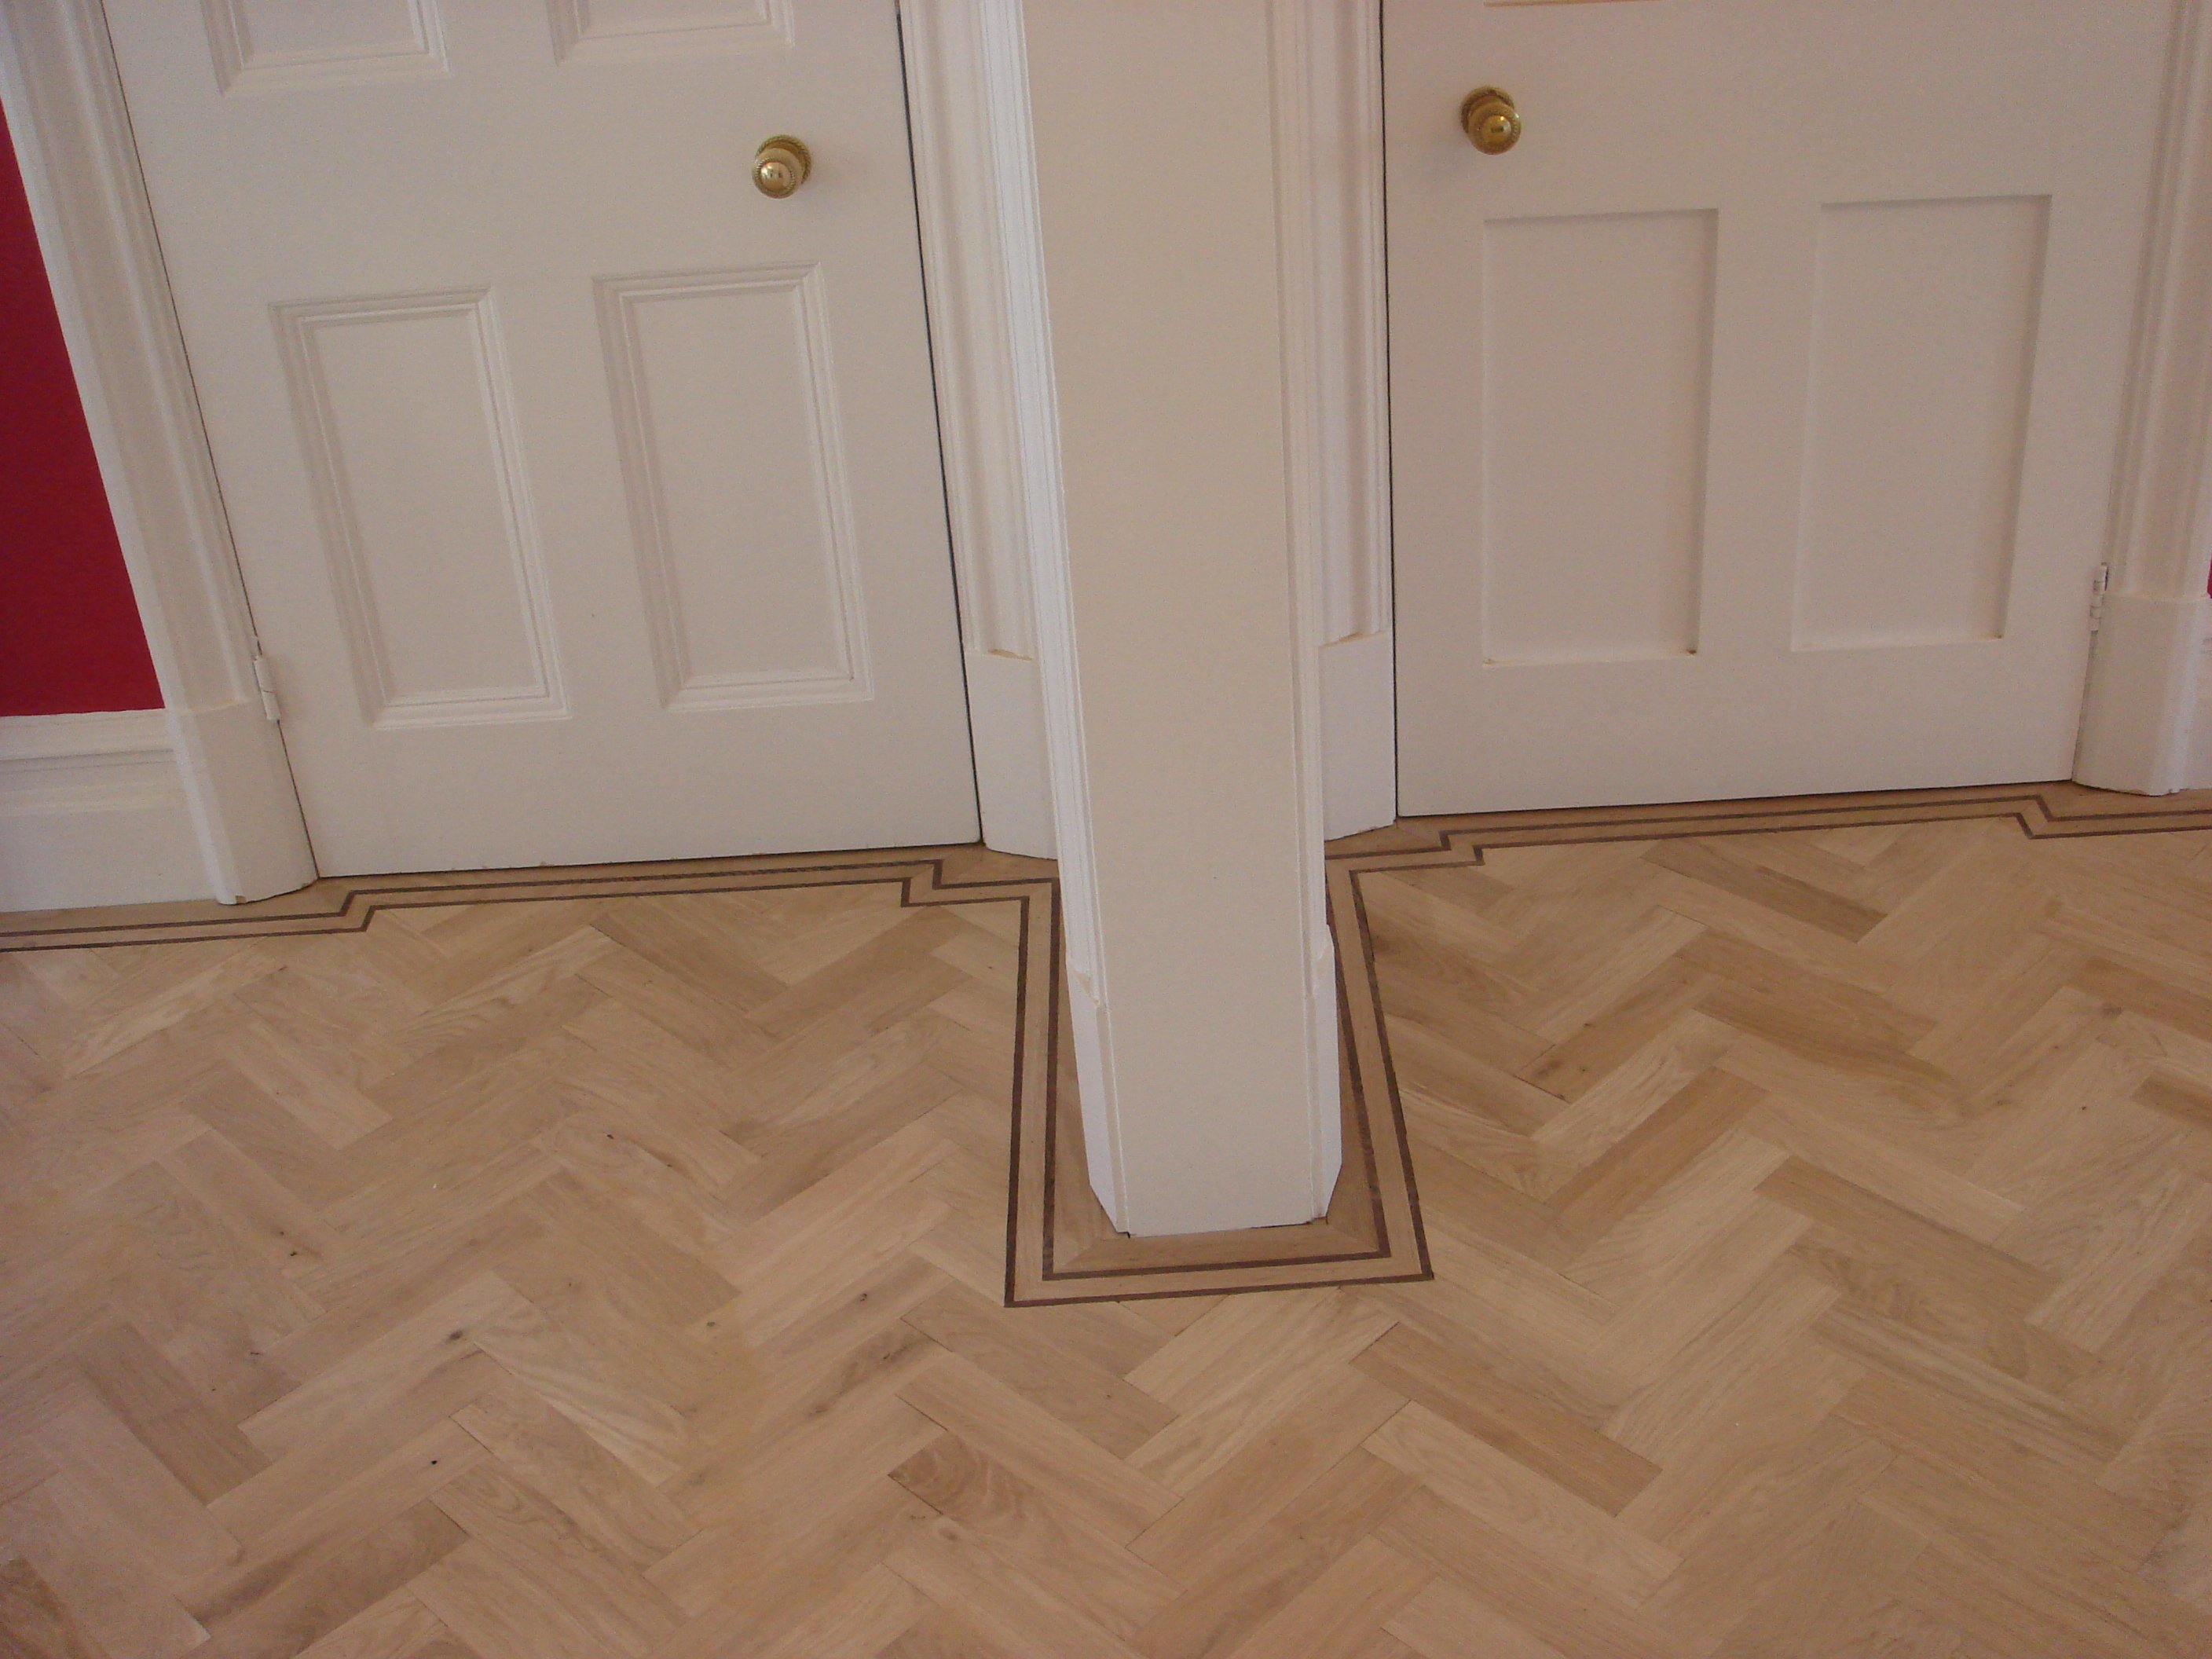 parquet floor fitted round room features